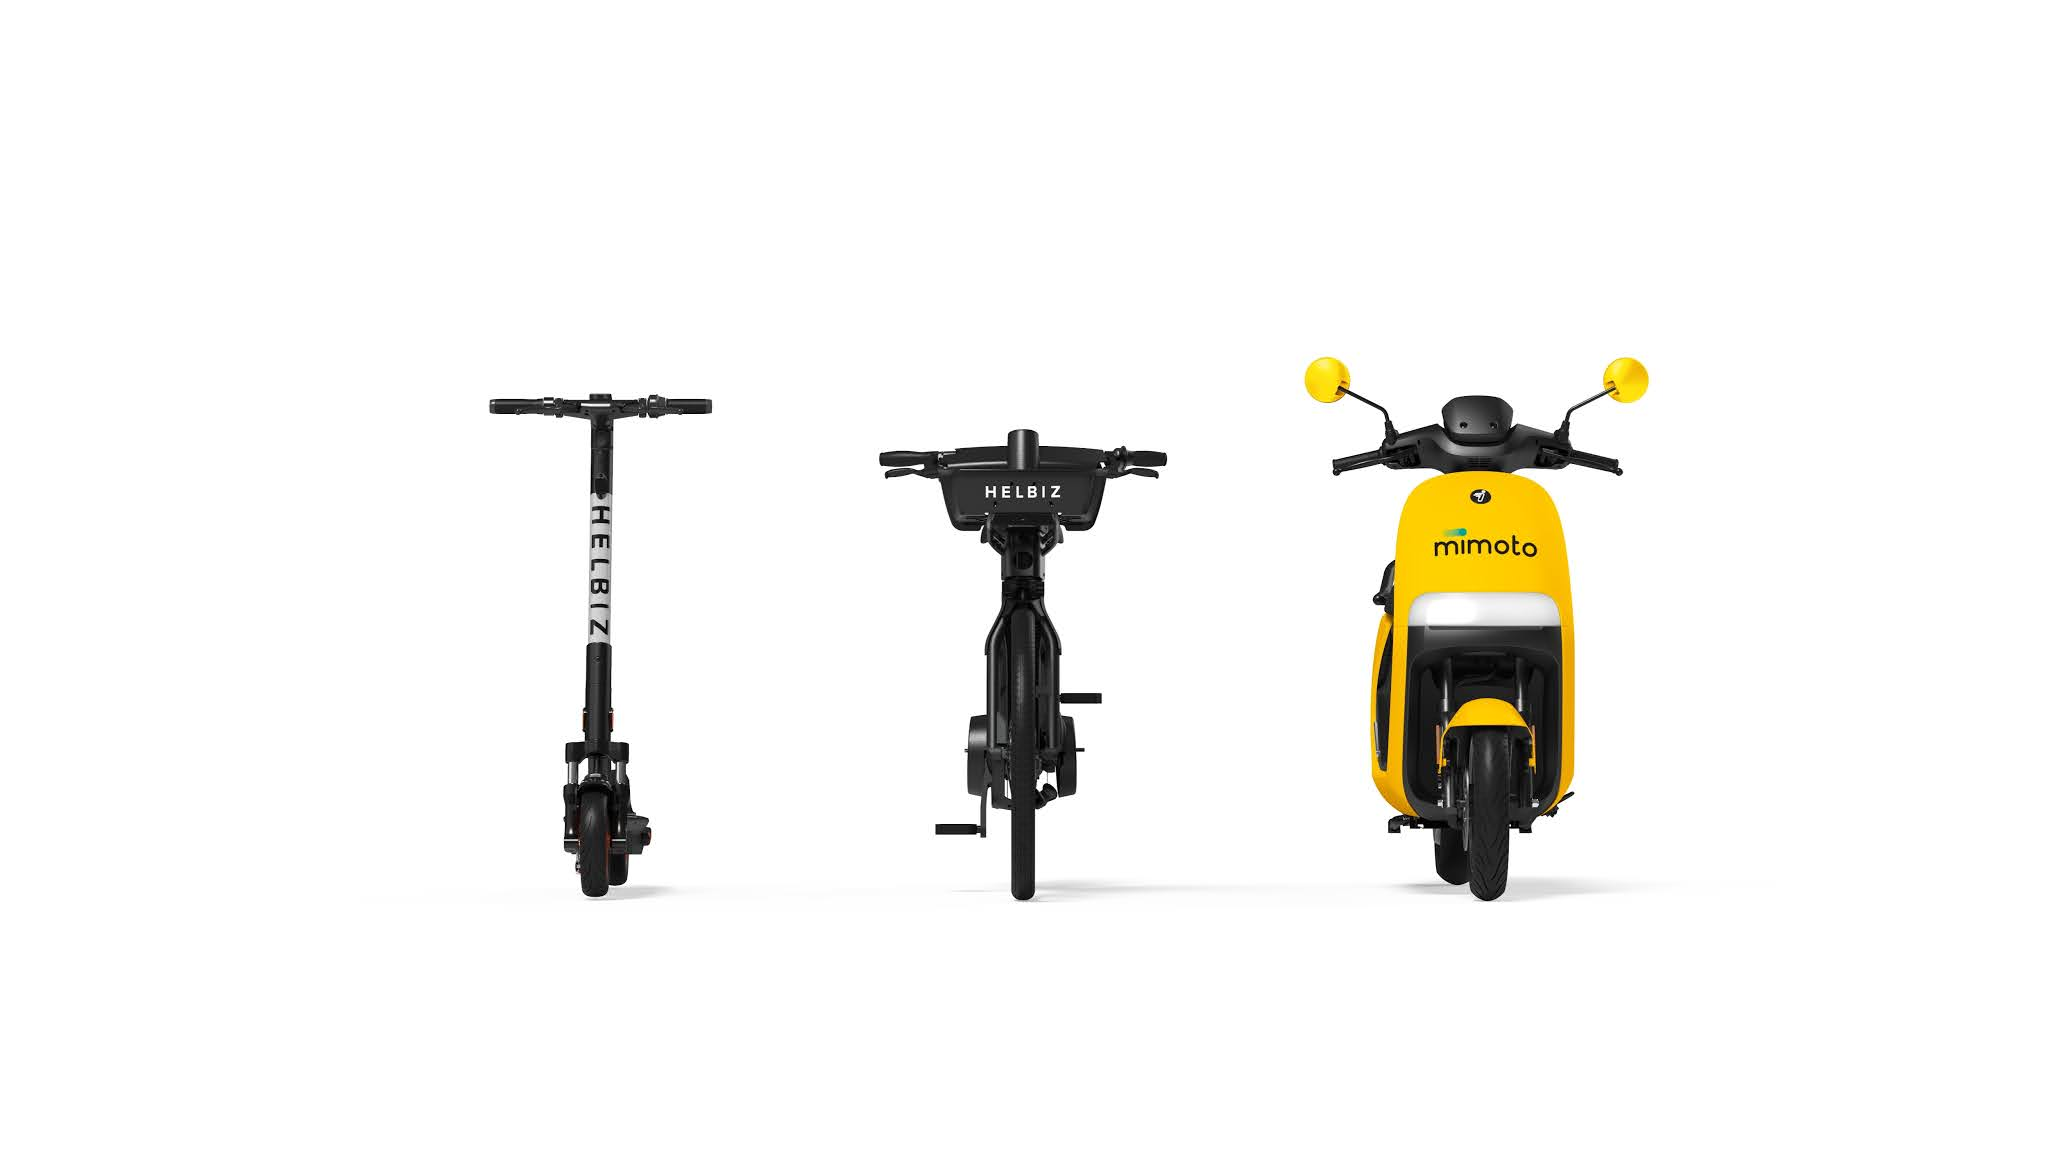 Helbiz acquires MiMoto to to Add E-Mopeds to its innovative fleet of micro-mobility vehicles